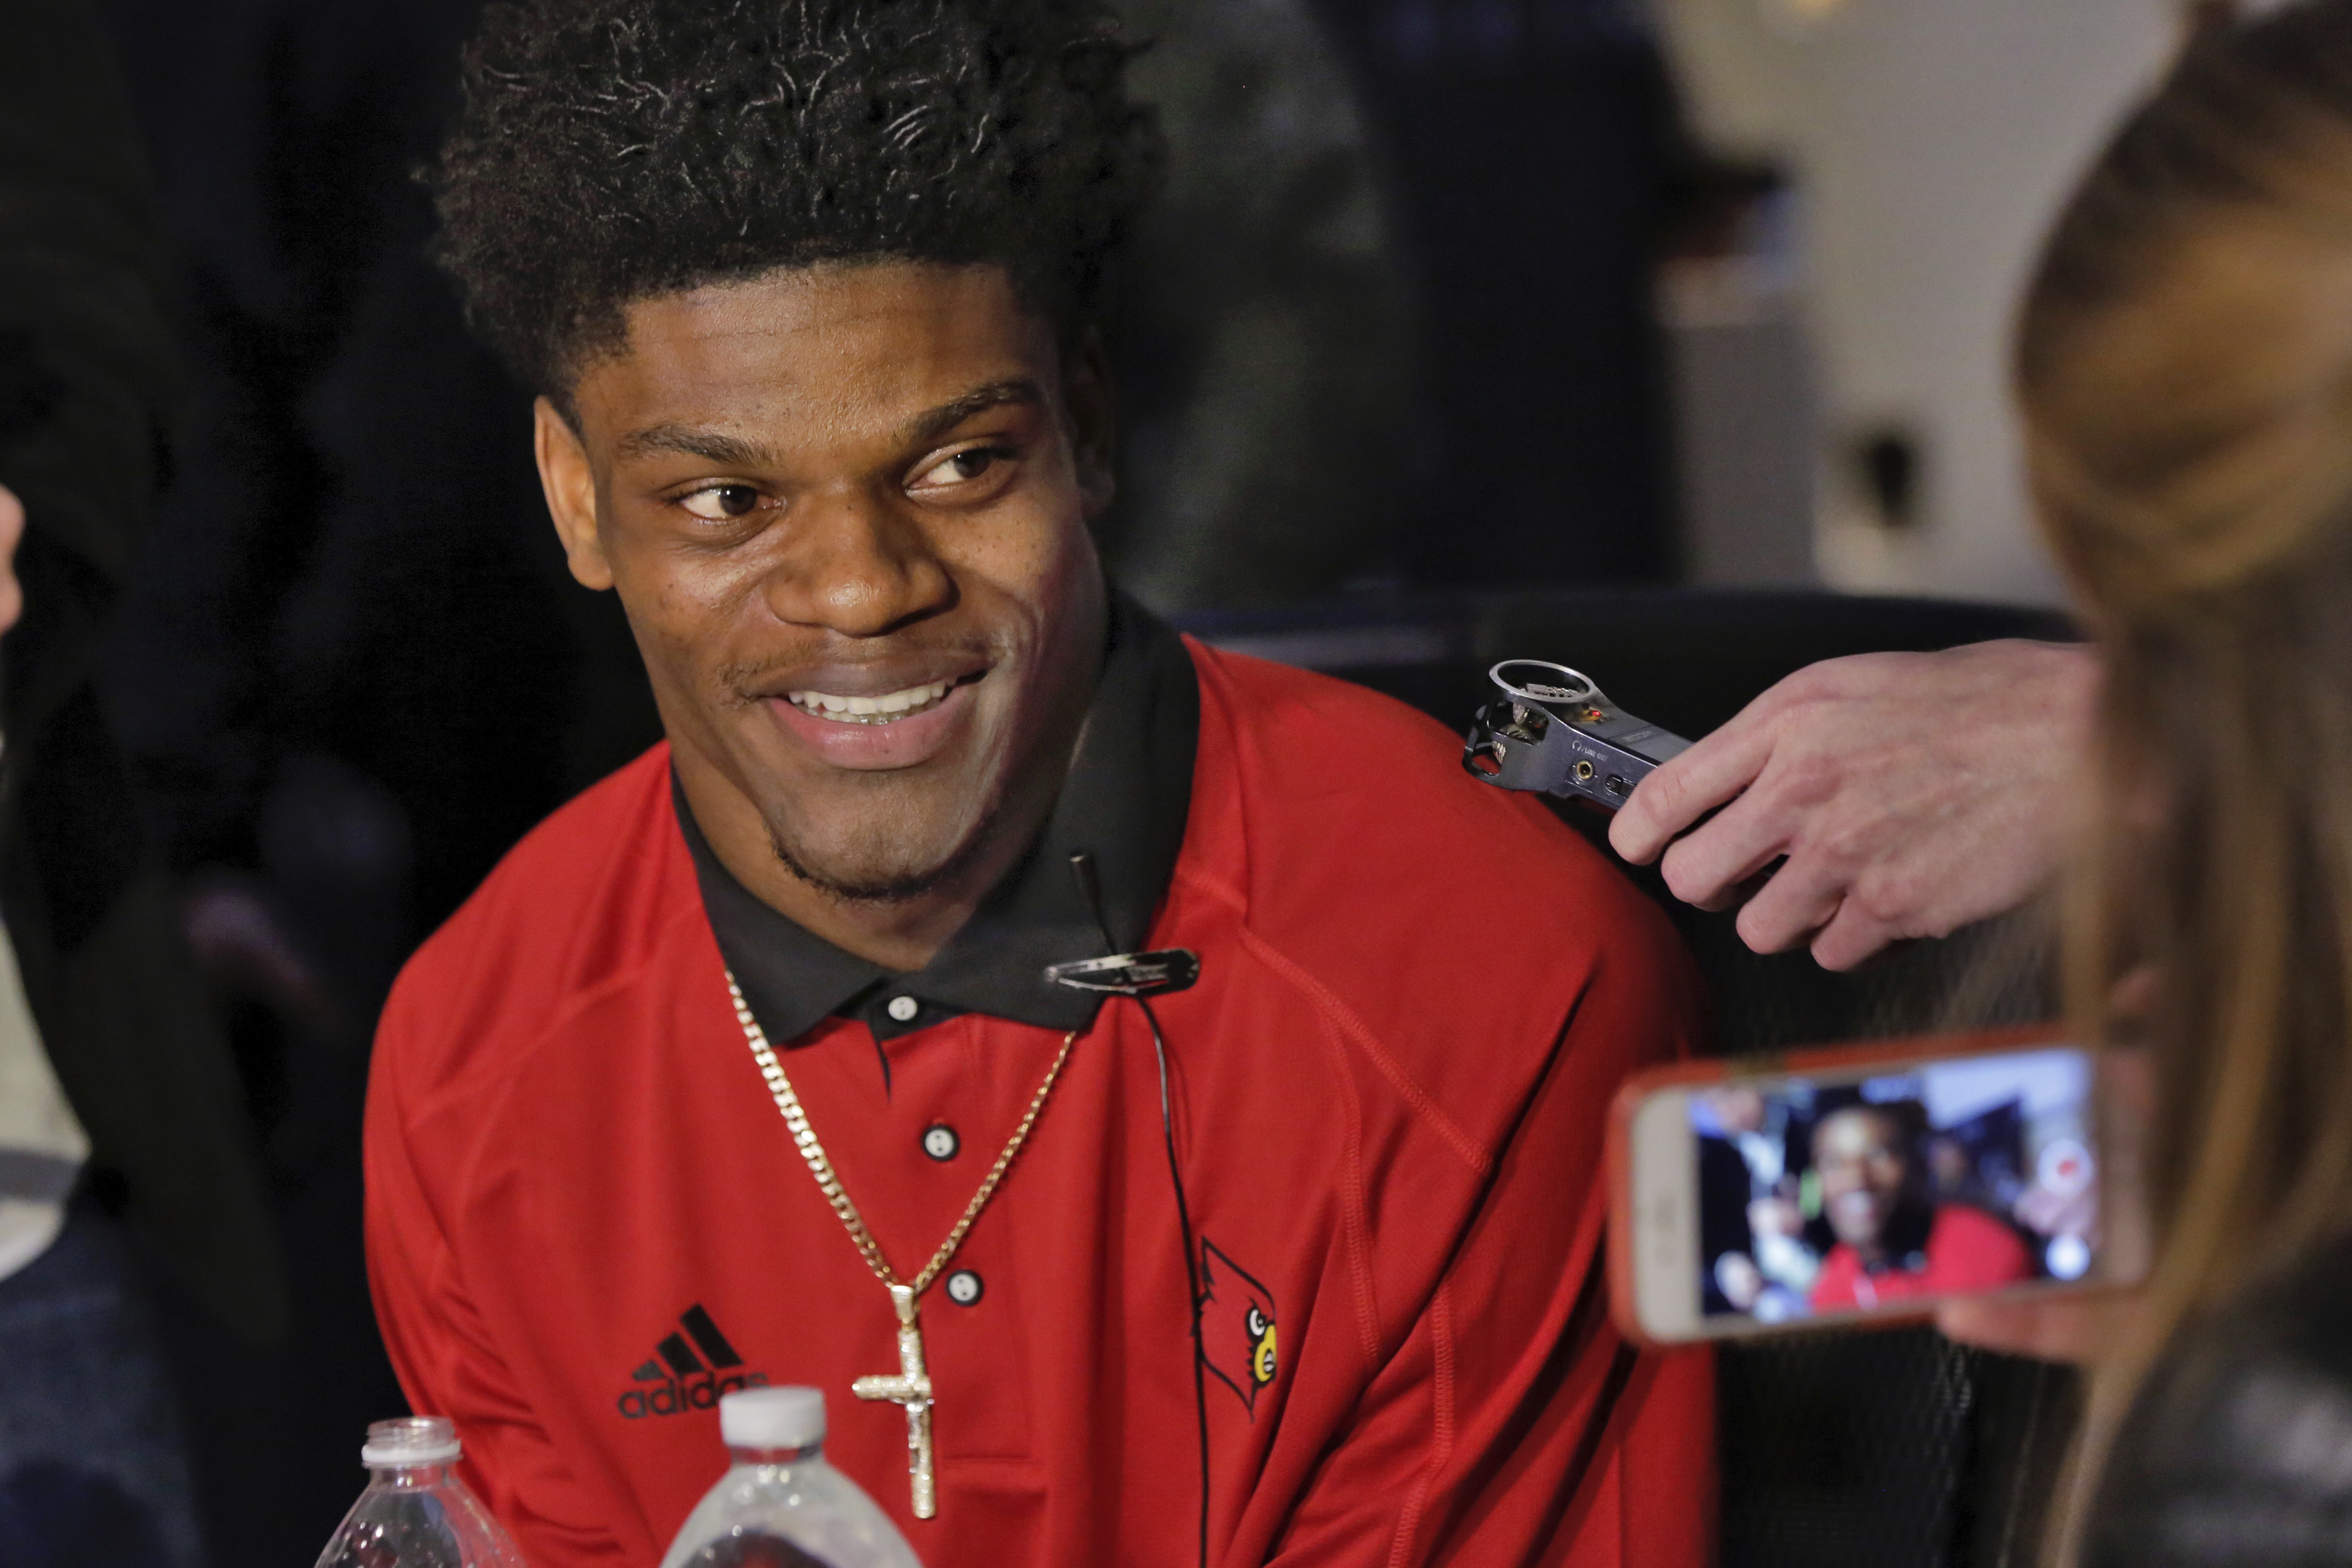 University of Louisville quarterback Lamar Jackson is interviewed during a Heisman Trophy media event in New York, Friday, Dec. 9, 2016. (AP Photo/Richard Drew)